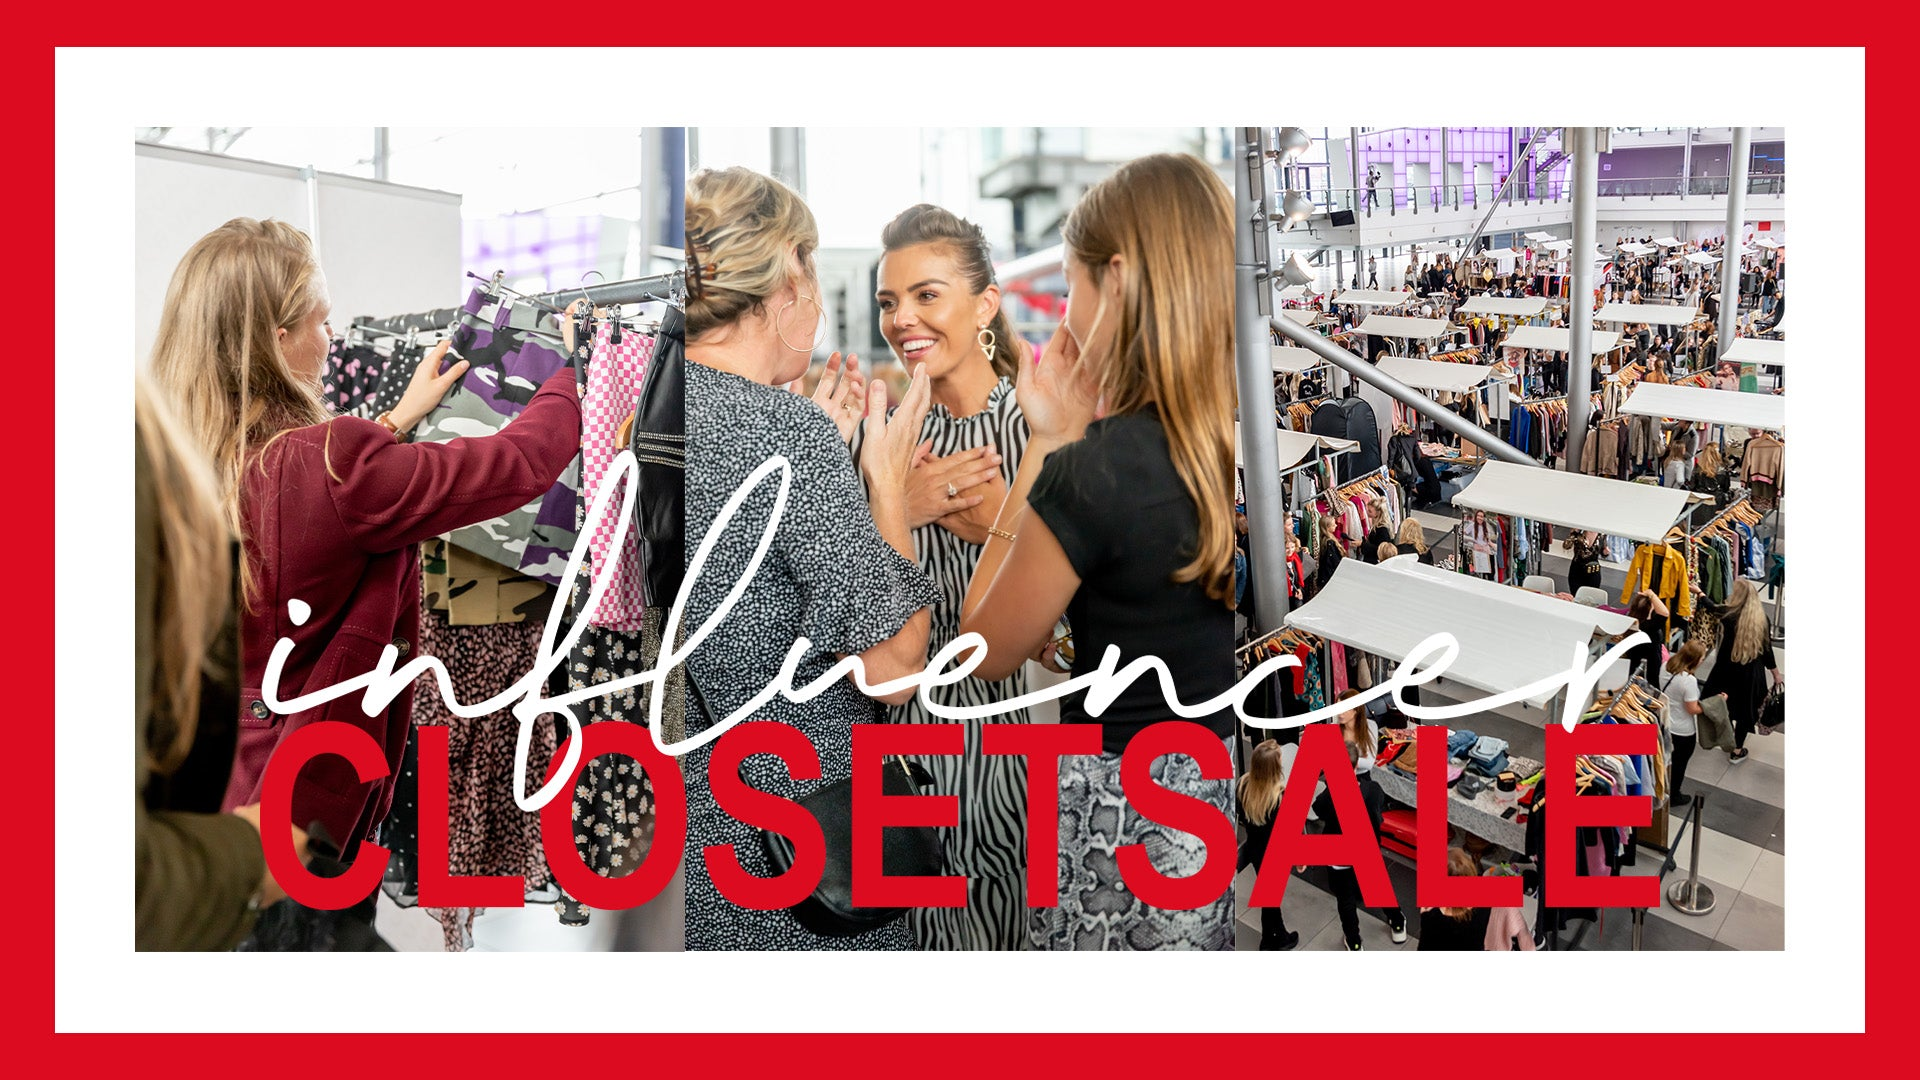 THE INFLUENCER CLOSETSALE IS BACK!